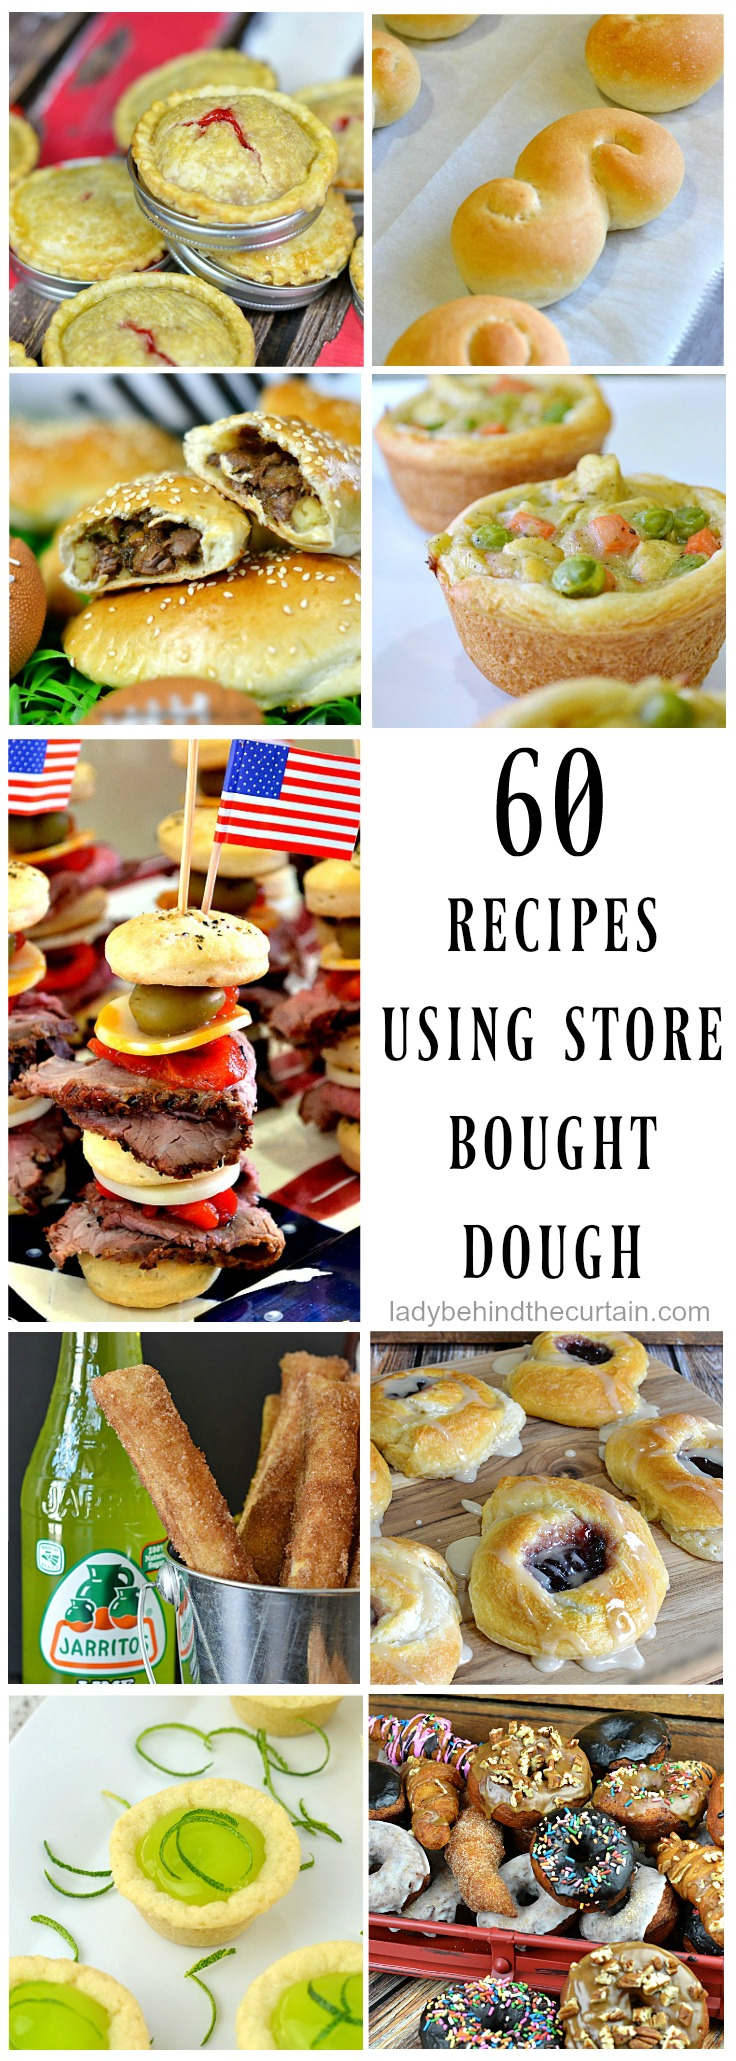 60 Recipes Using Store Bought Dough